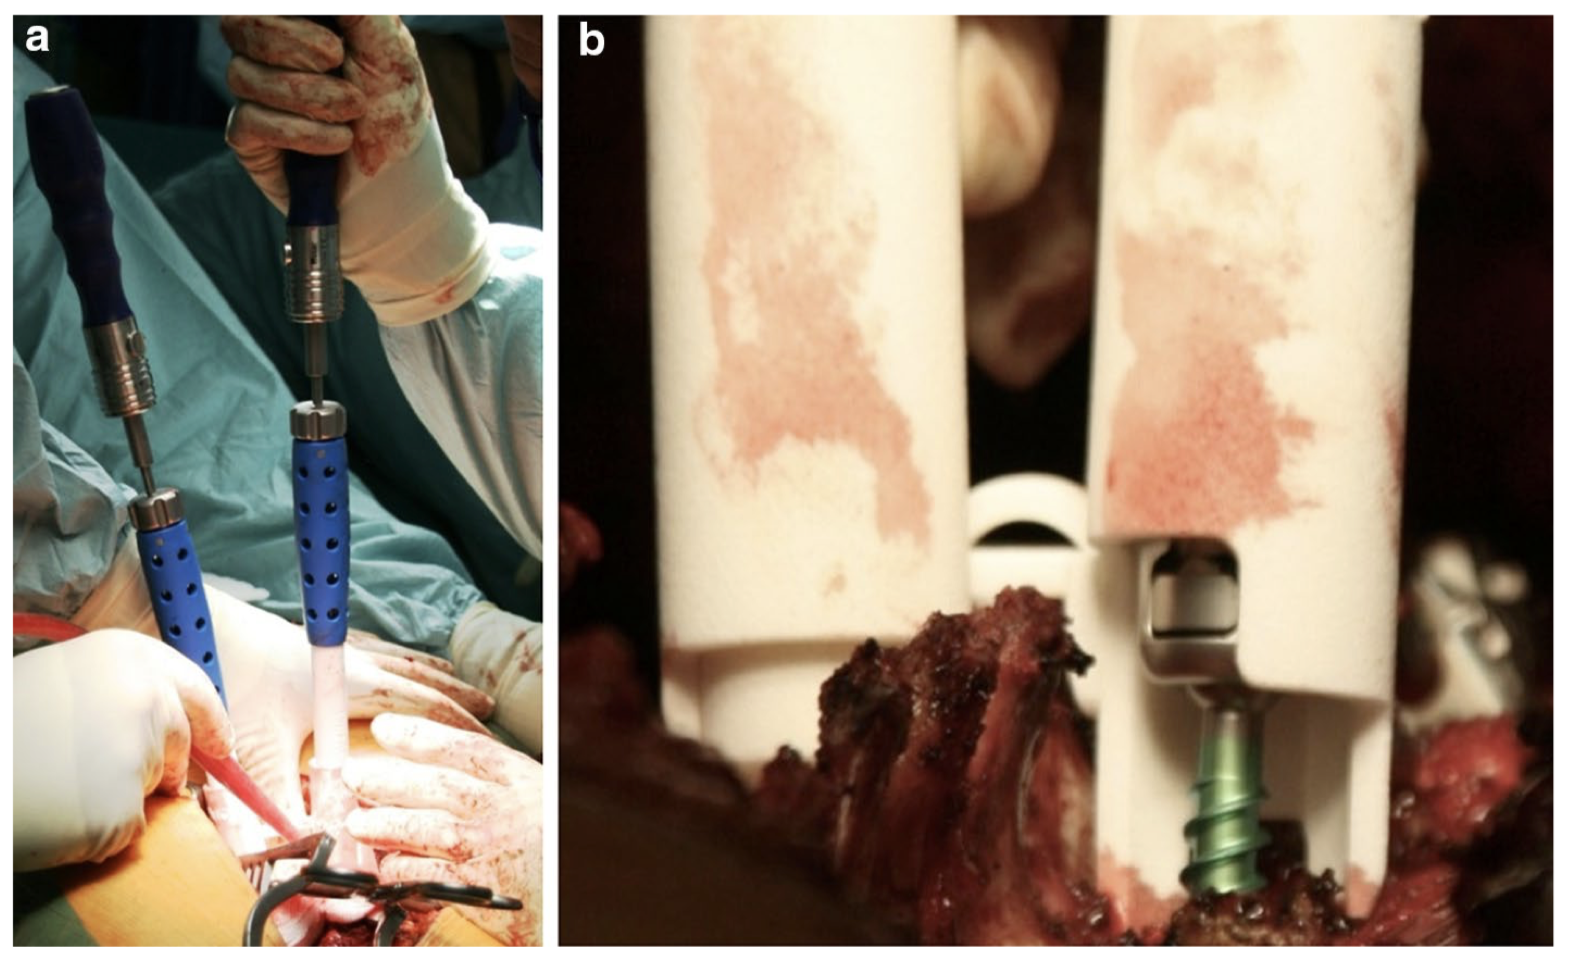 Pedicle screw insertion with patient-specific 3D-printed guides based on low-dose CT scan is more accurate than free-hand technique in spine deformity patients: a prospective, randomized clinical trial